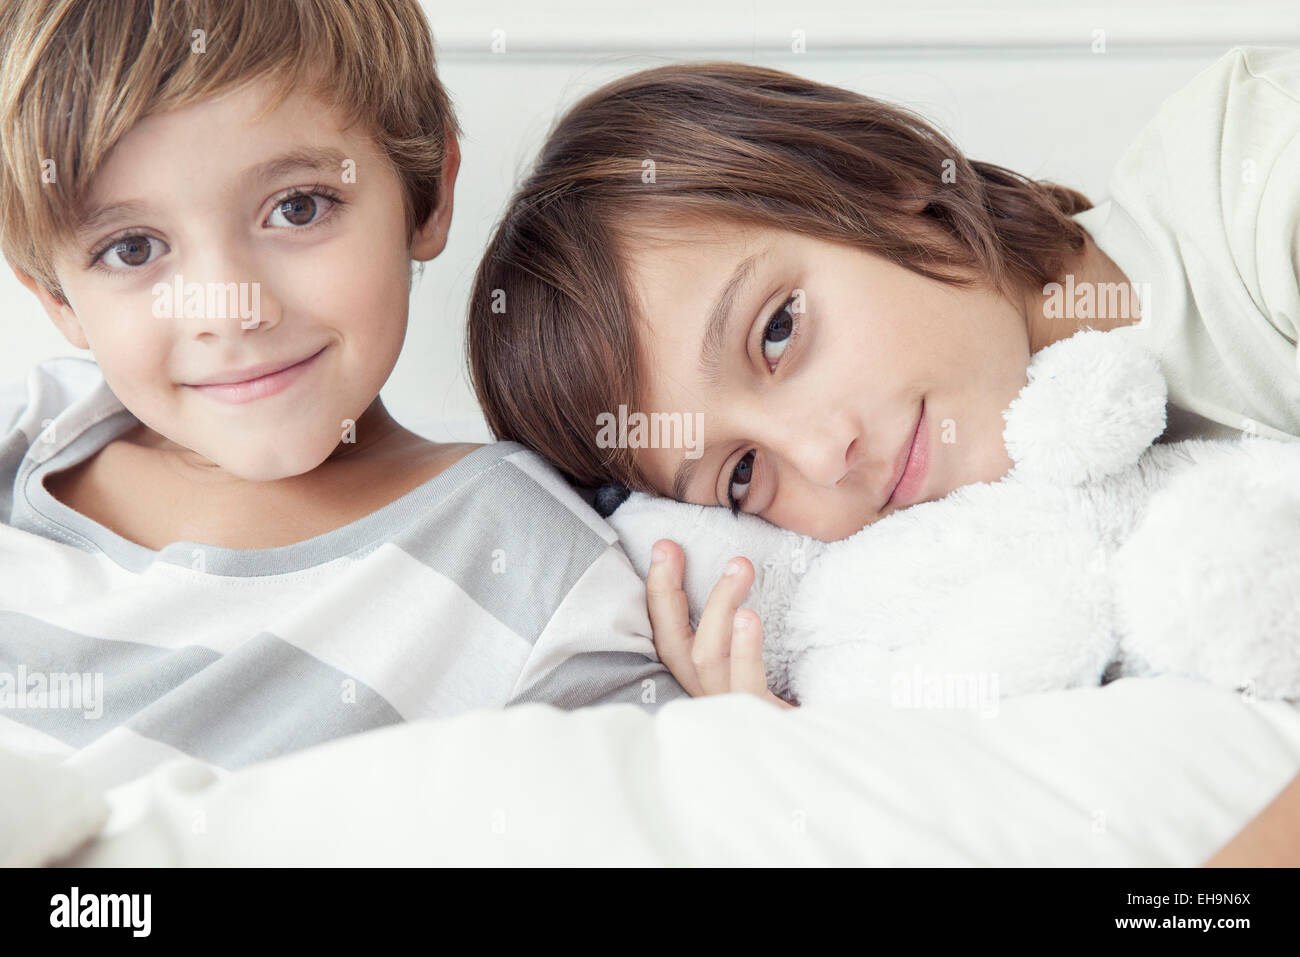 Brothers, portrait - Stock Image